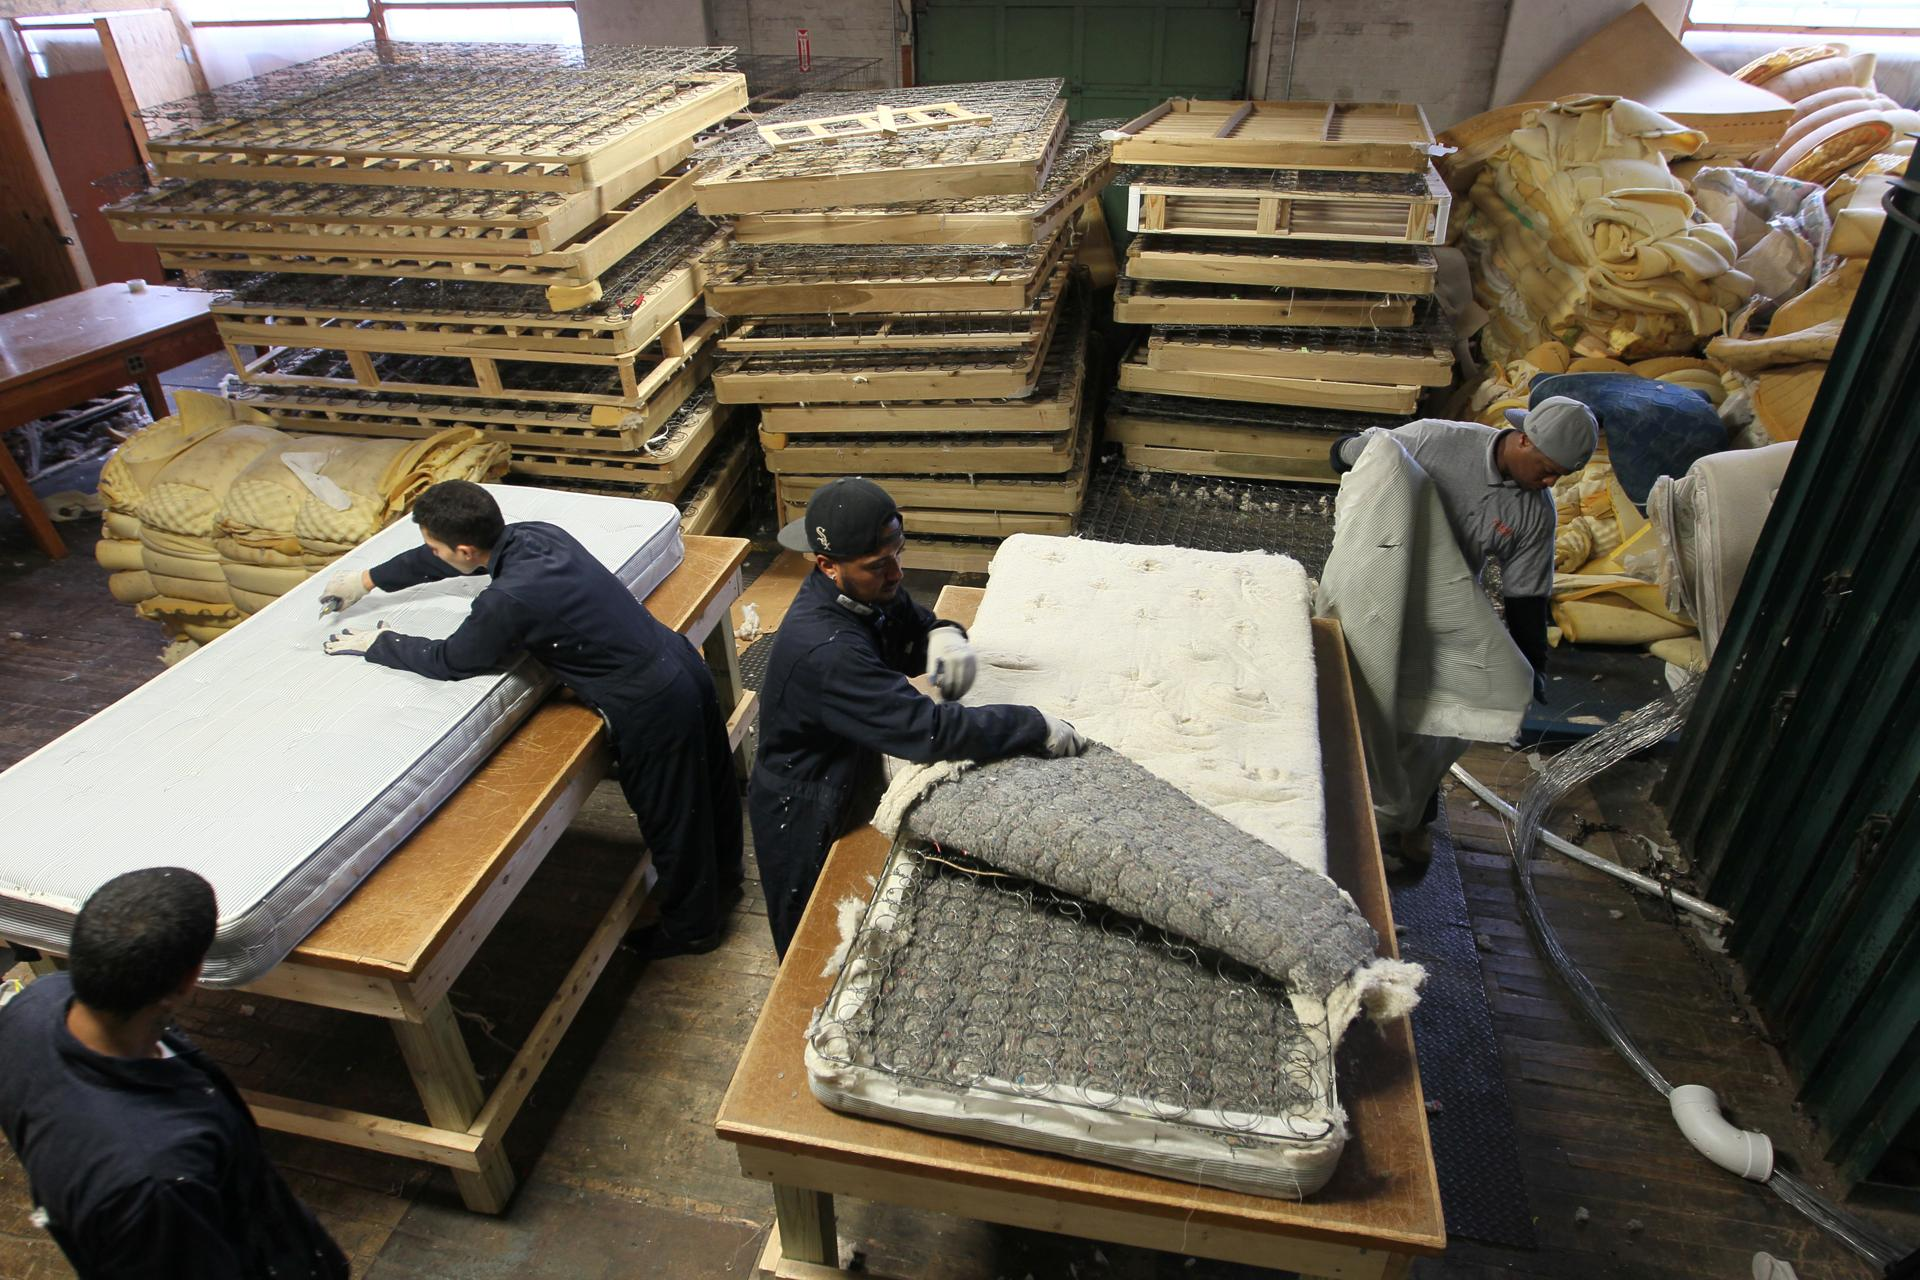 A worker in Lawrence began the process of taking apart a mattress for recycling.